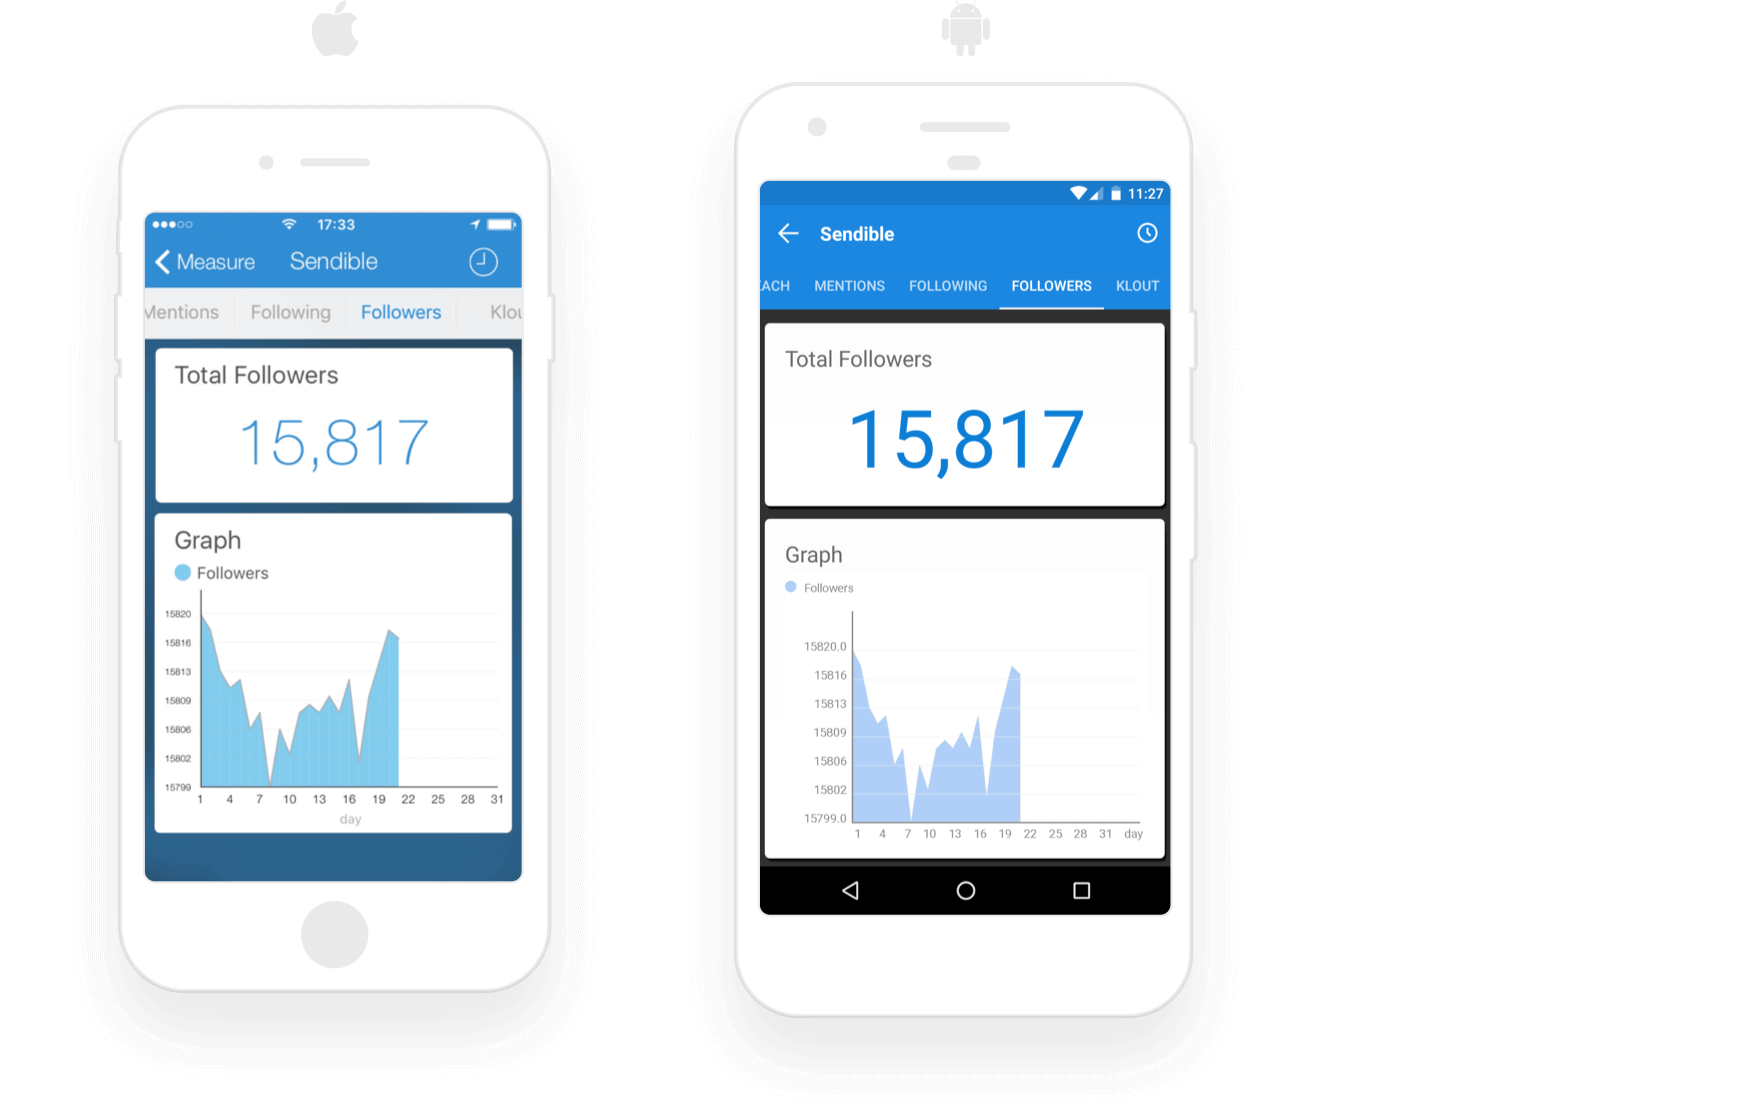 Keep track of key social metrics from your phone